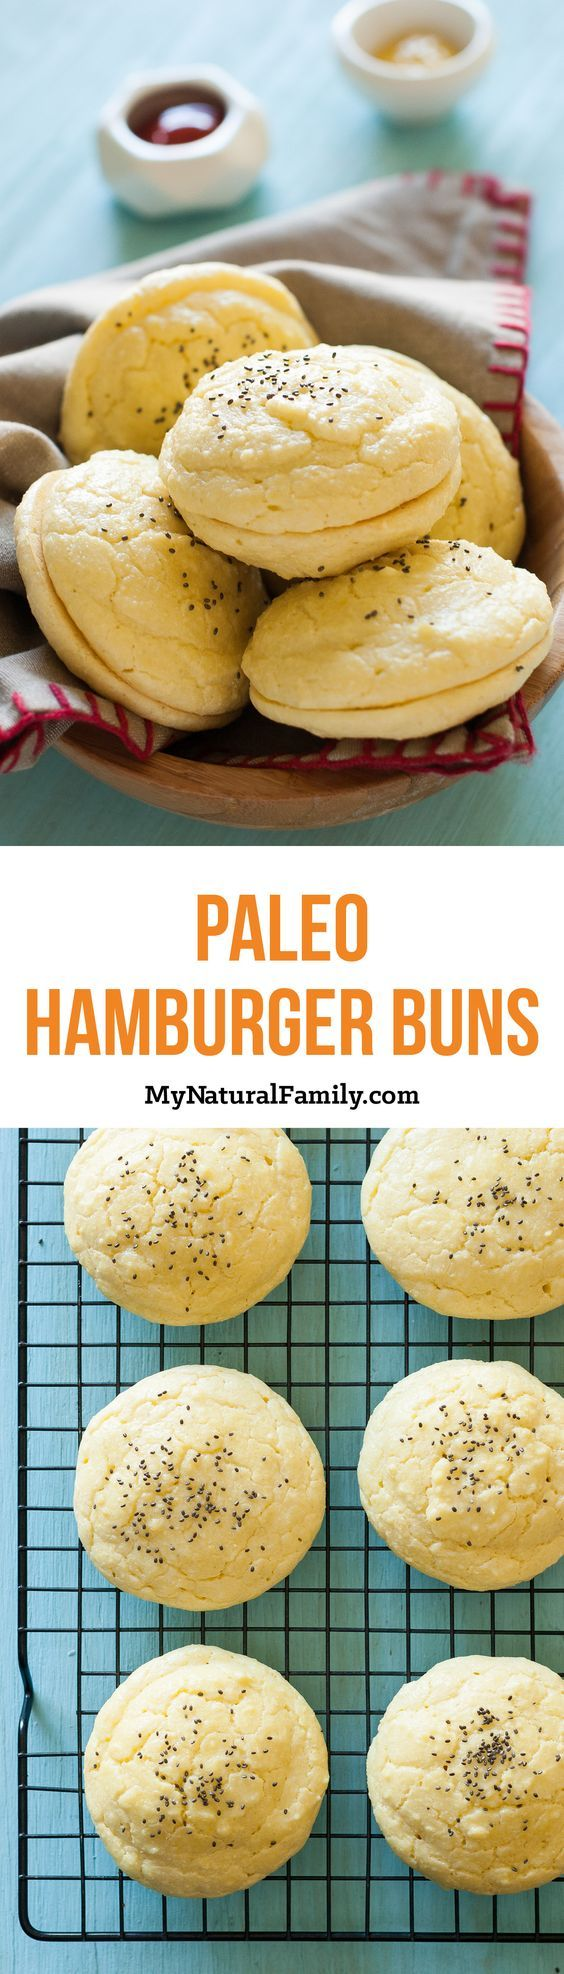 Paleo Hamburger Buns Recipe